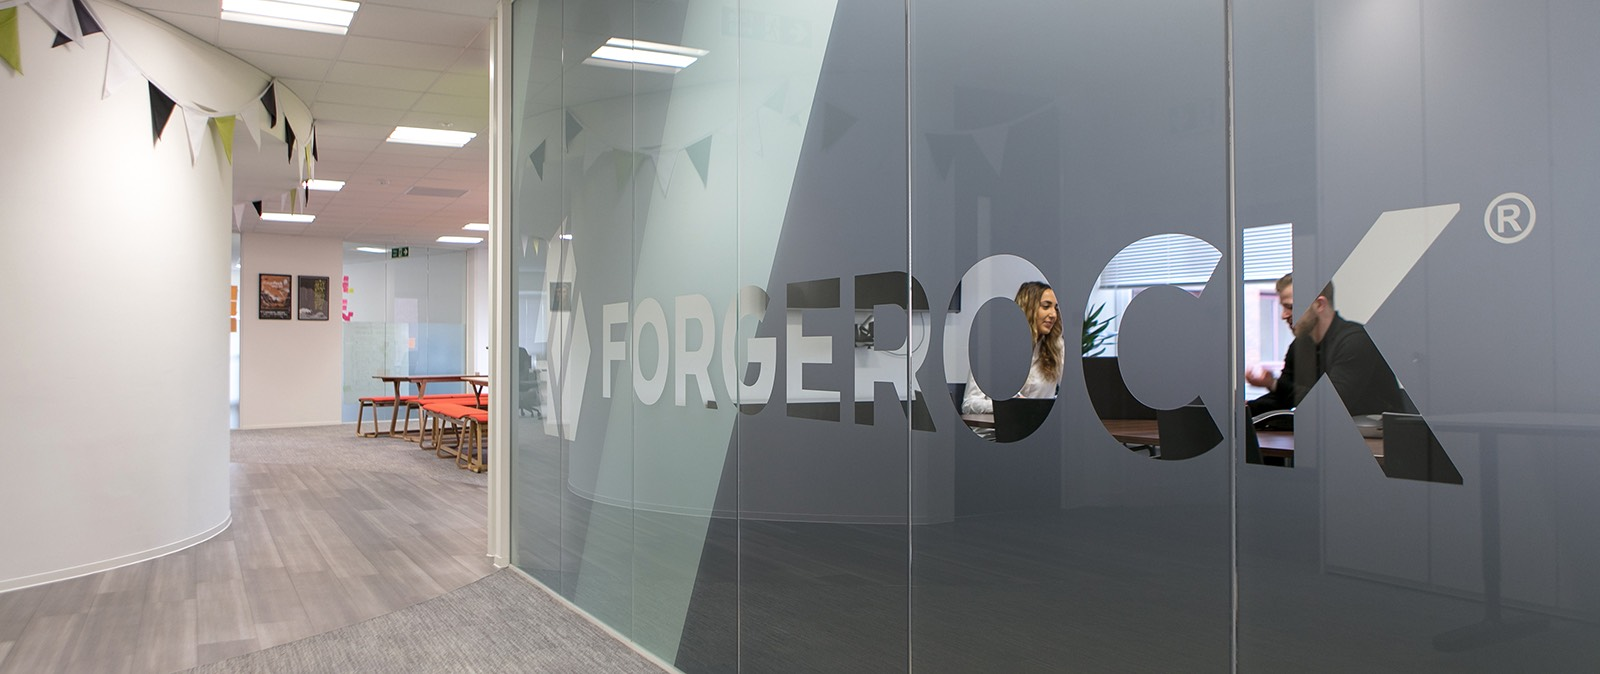 forge-rock-office-2